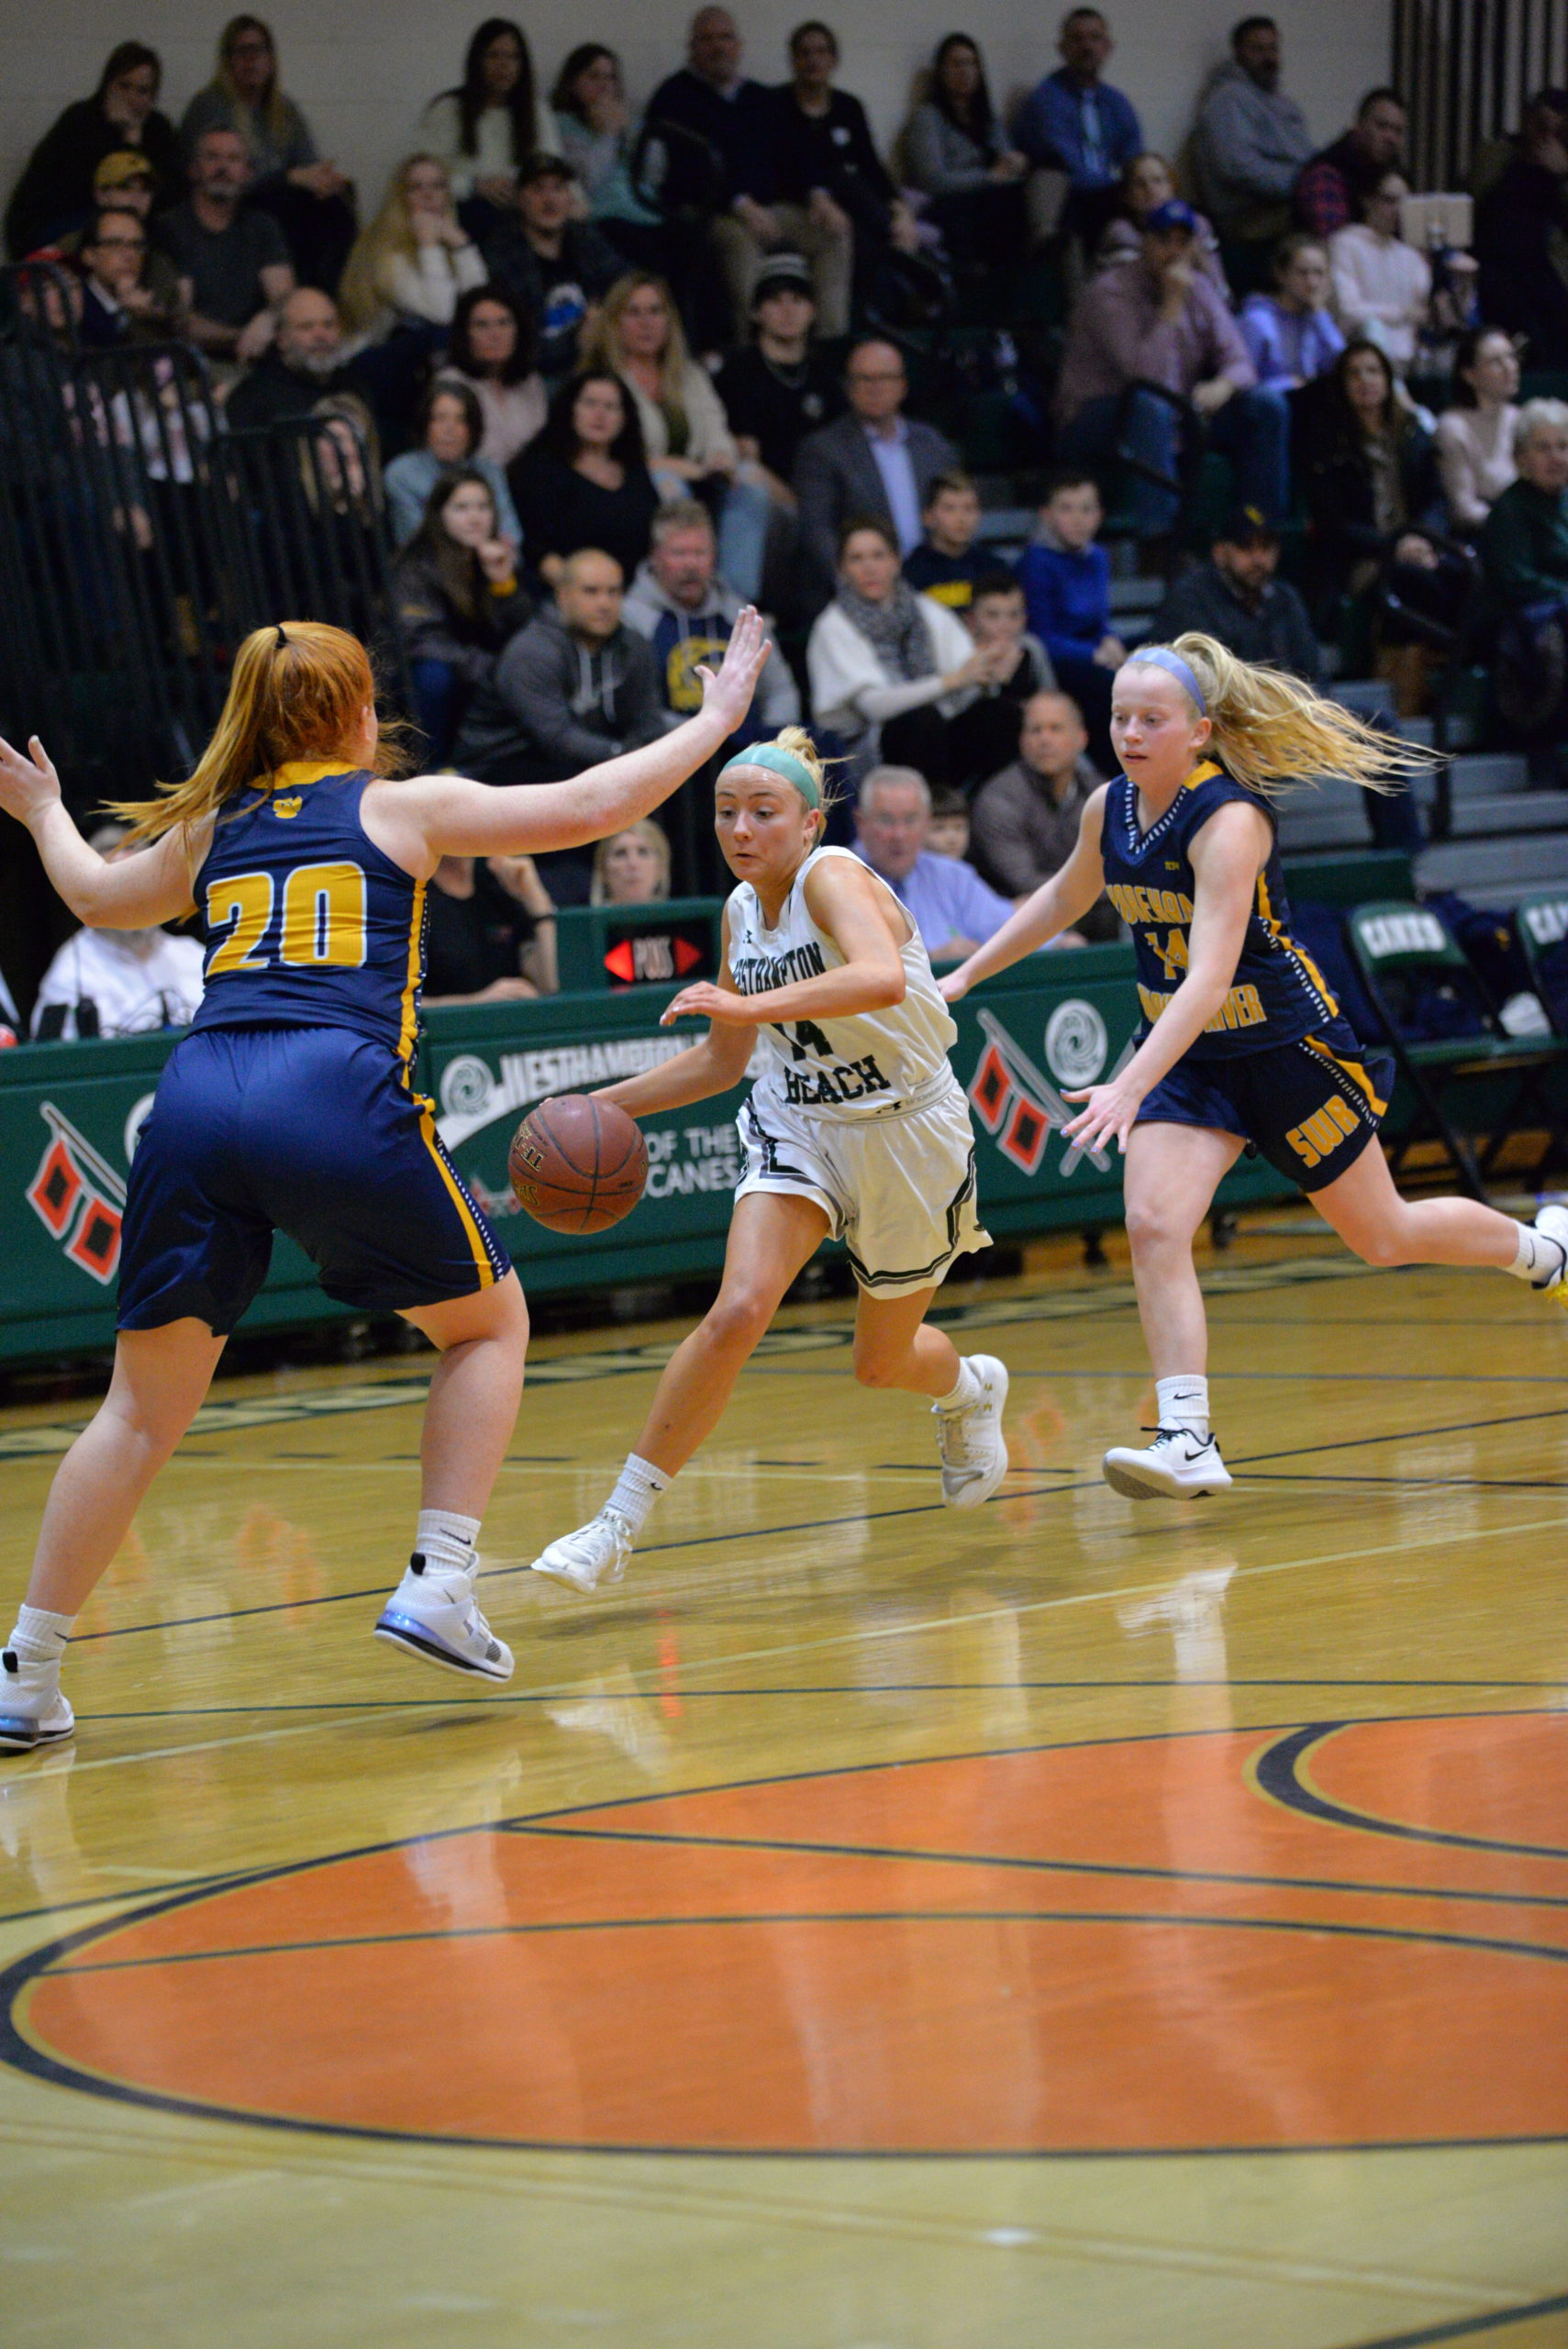 Caroline Henke of Westhampton Beach brings the ball upcourt.